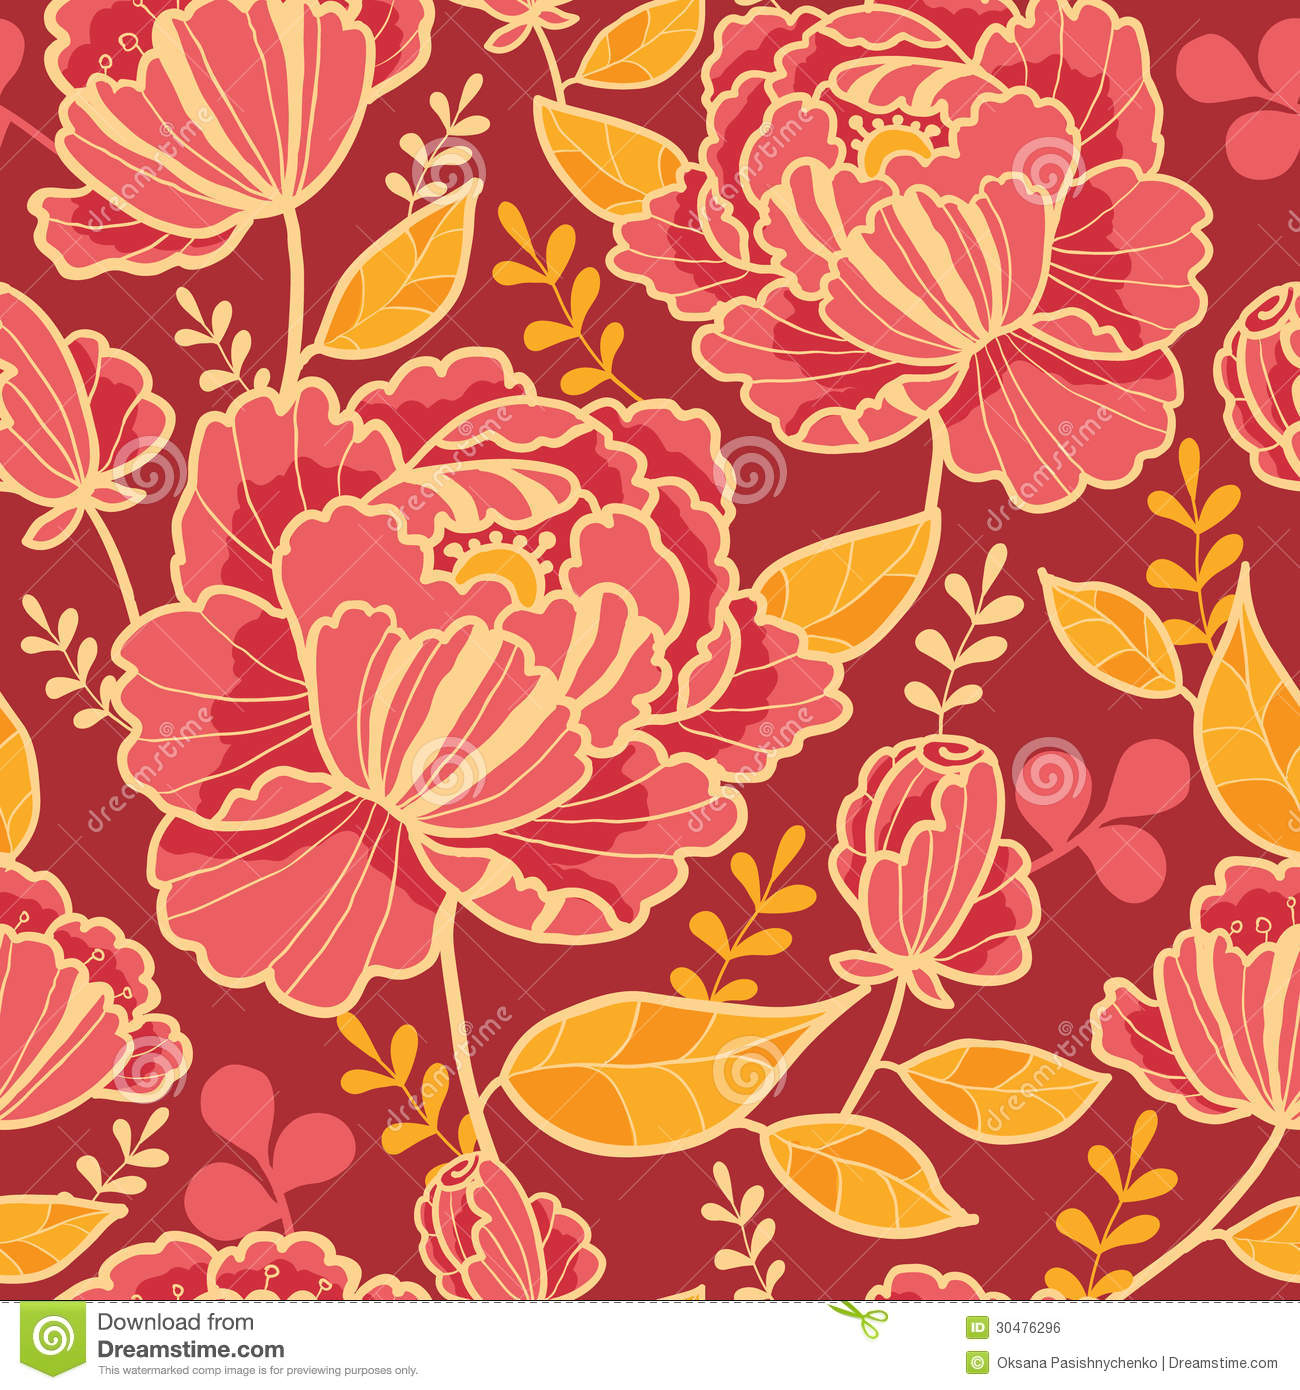 Fall In Love Leaf Wallpaper Gold And Red Flowers Seamless Pattern Background Royalty